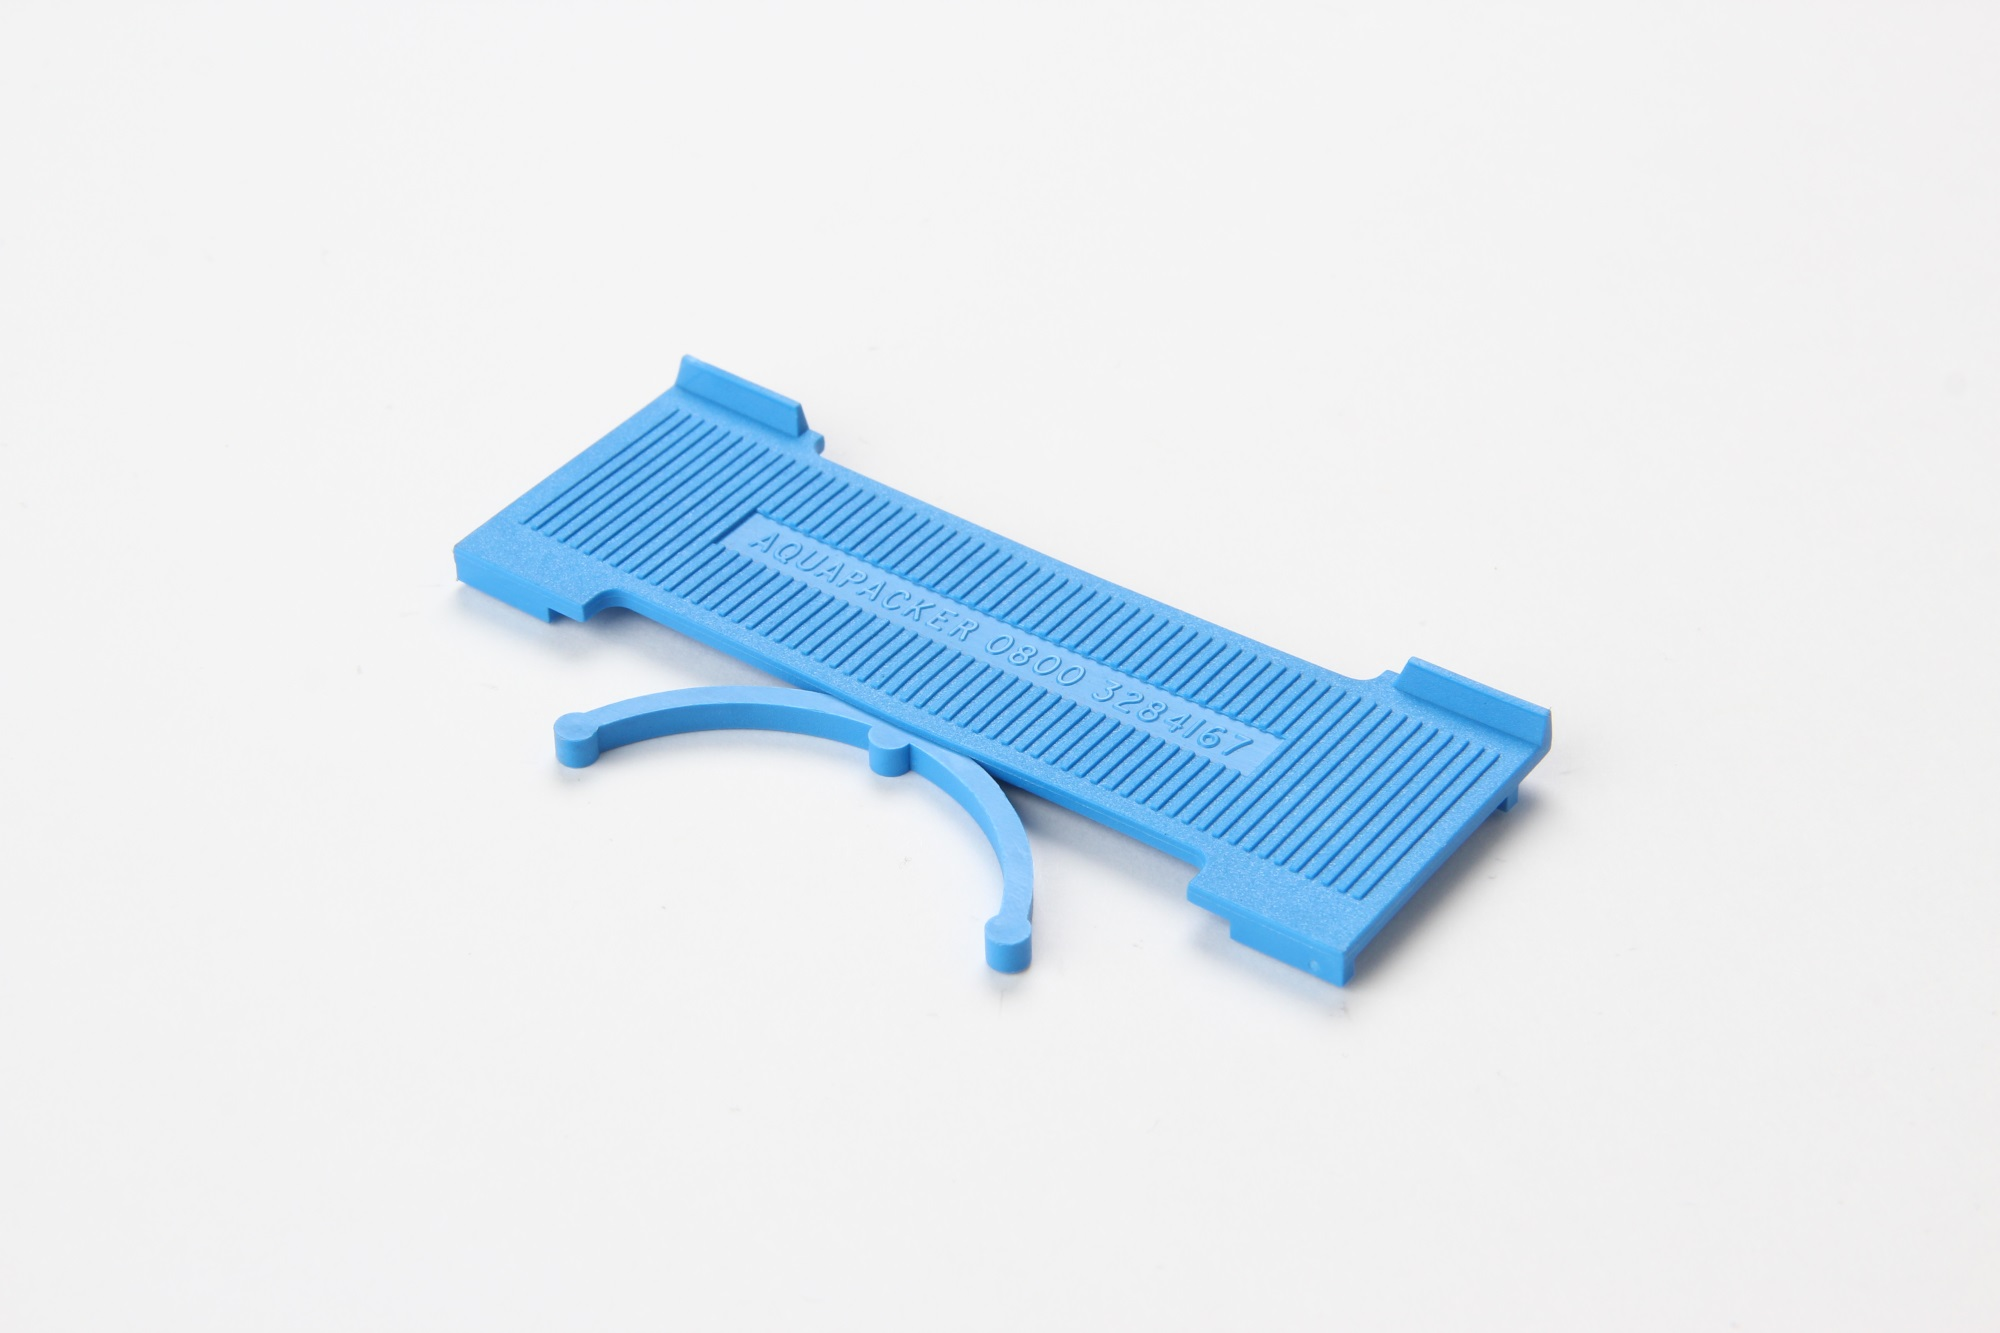 KlassePACK aquapacker blue